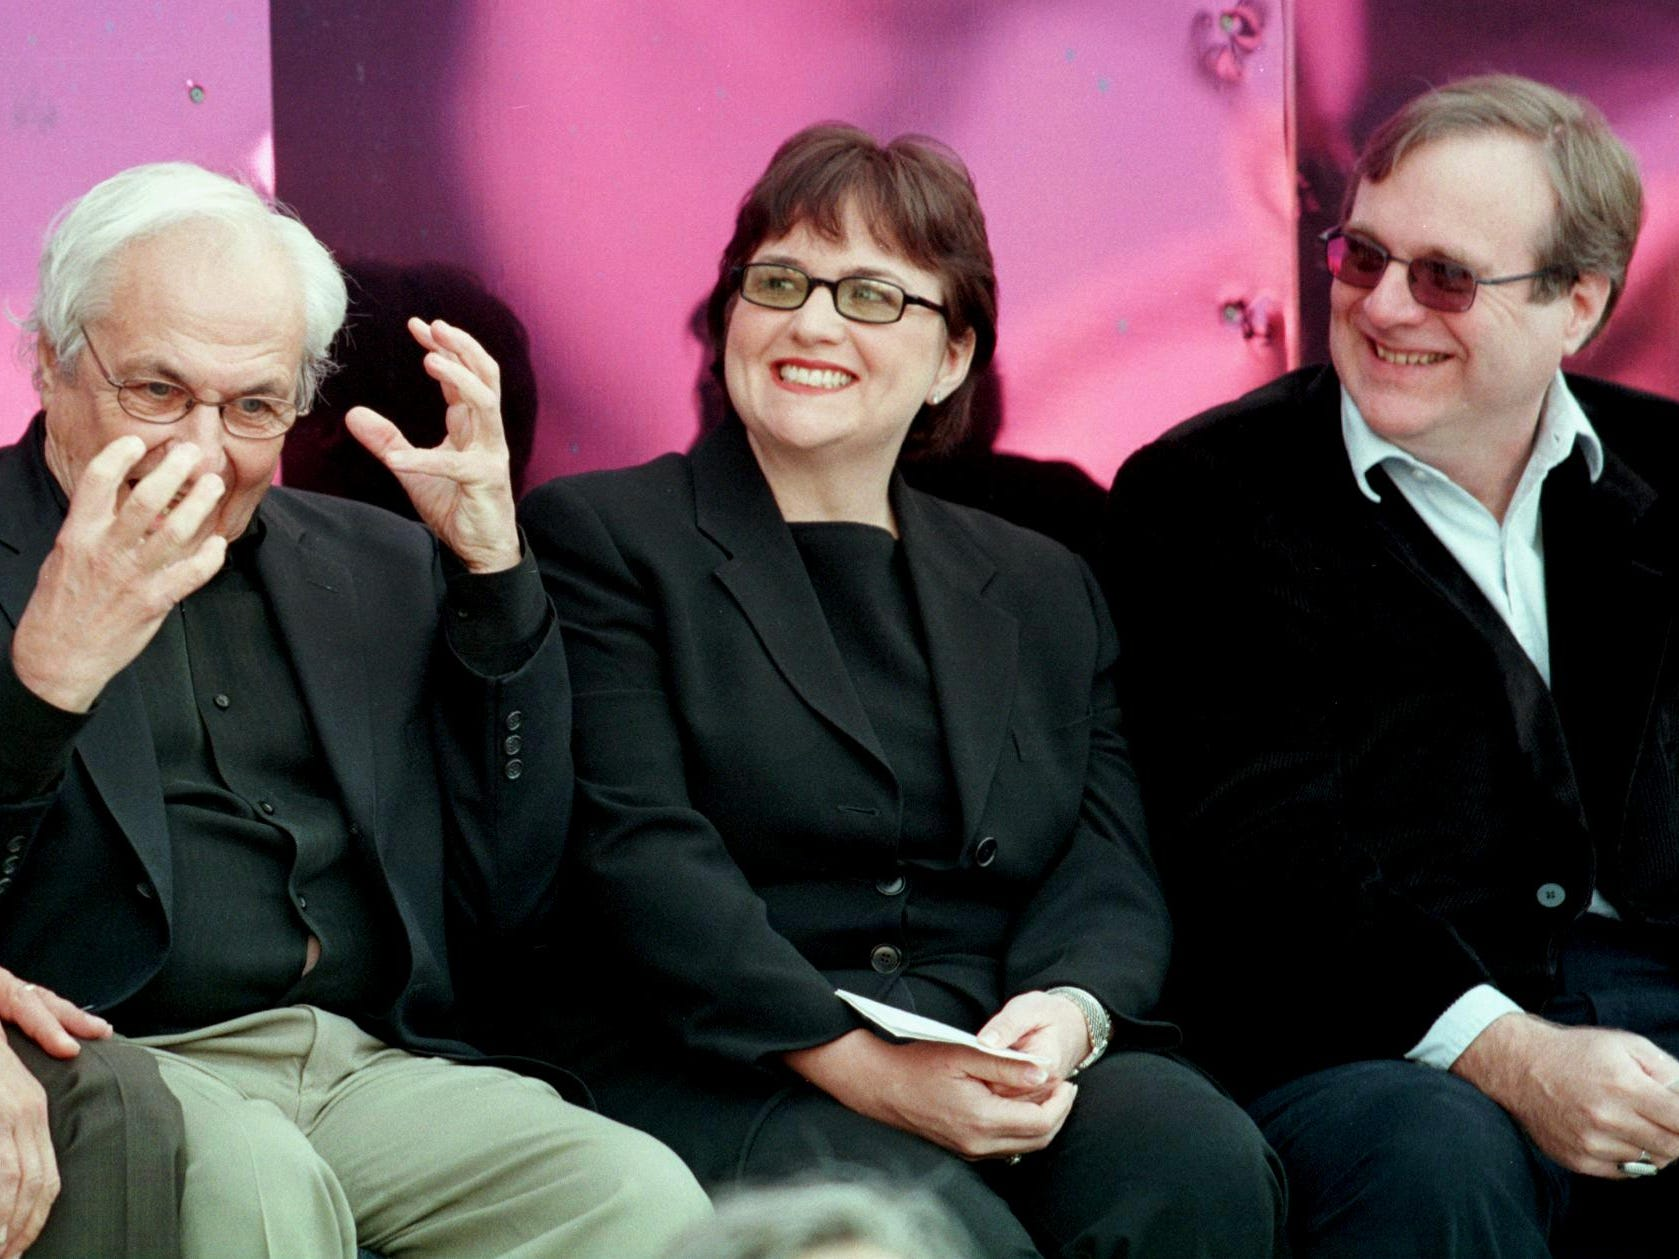 Experience Music Project museum architect Frank Gehry, left, speaks while museum co-founders Paul Allen, right, and Allen's sister, Jody Allen Patton, center, listen during the grand opening in Seattle, June 23, 2000.